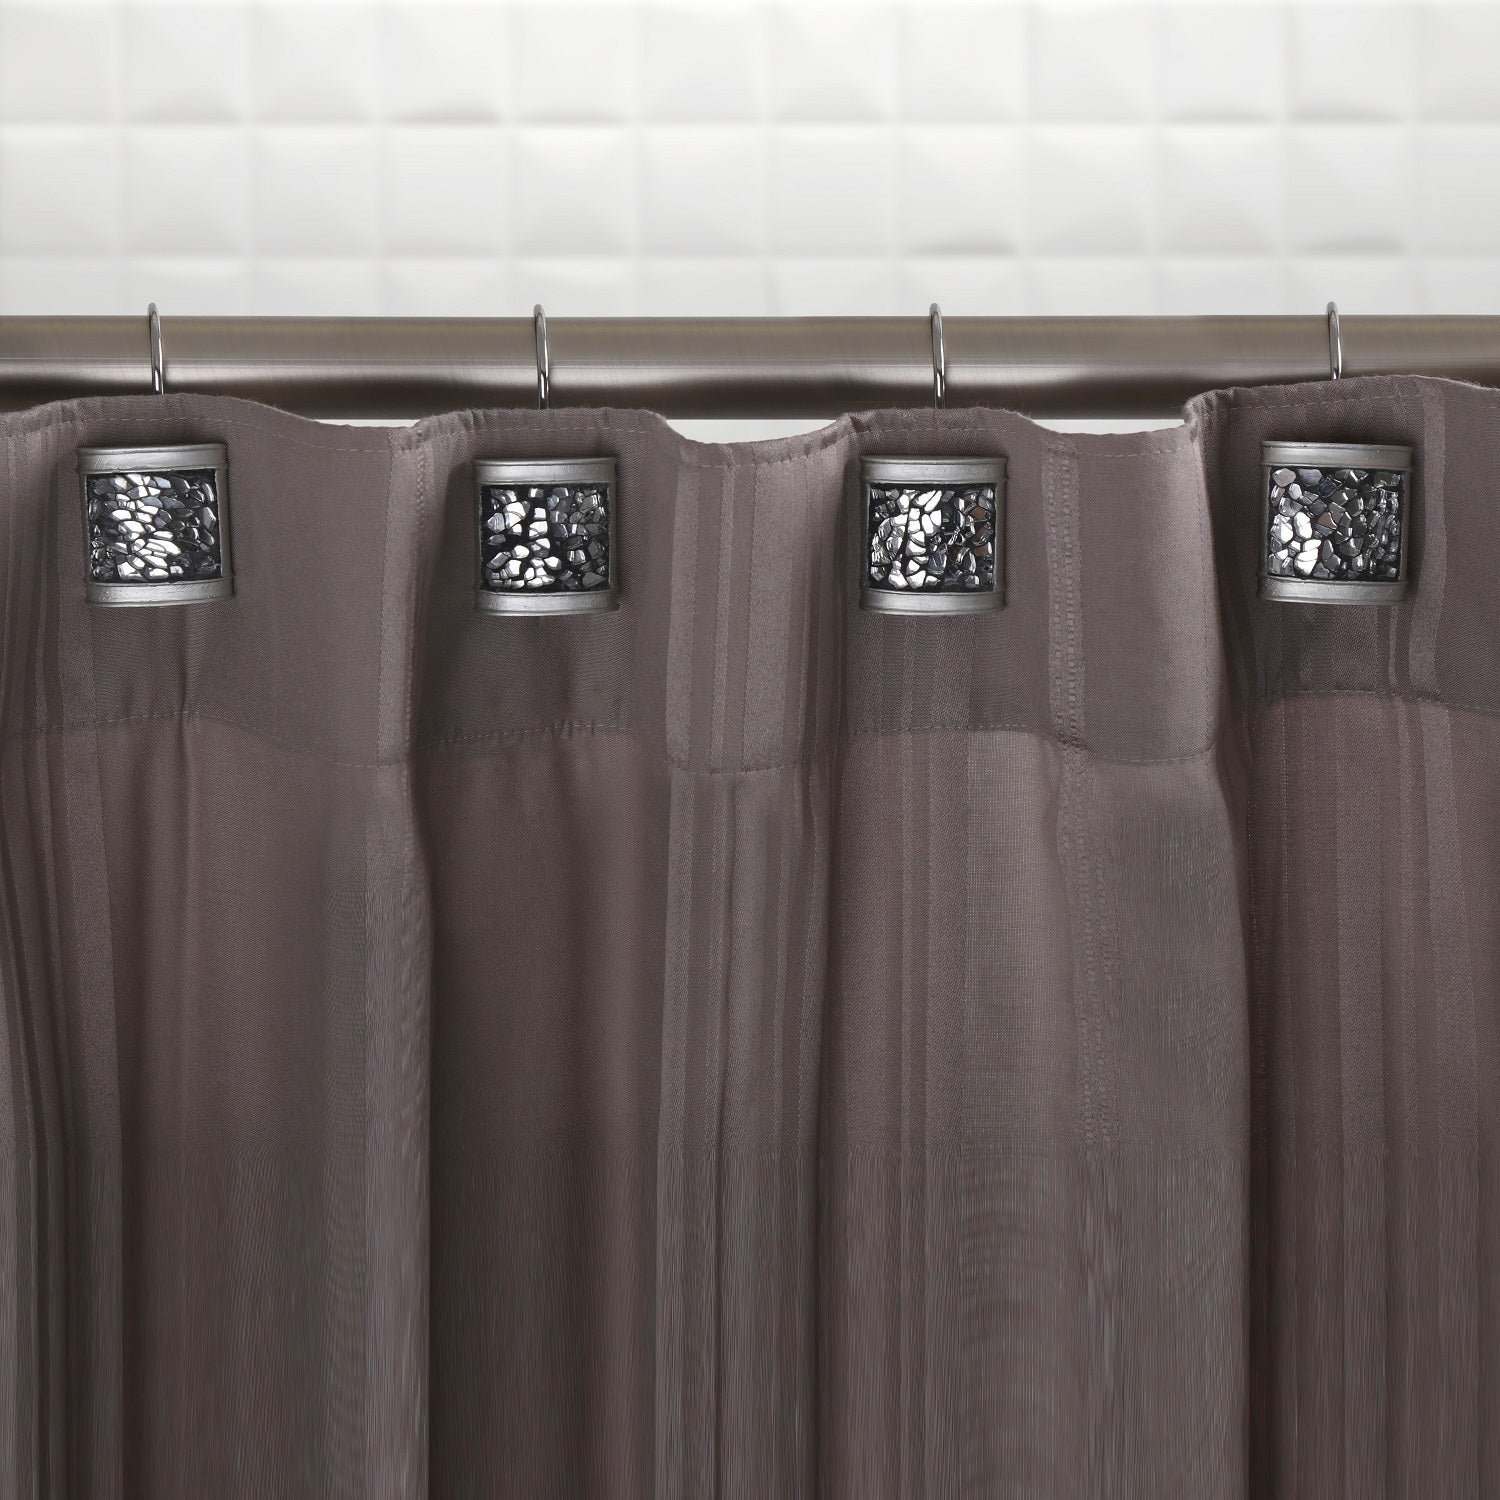 Shop Crackled Glass Shower Curtain Hooks (Set of 12) - Free Shipping ...